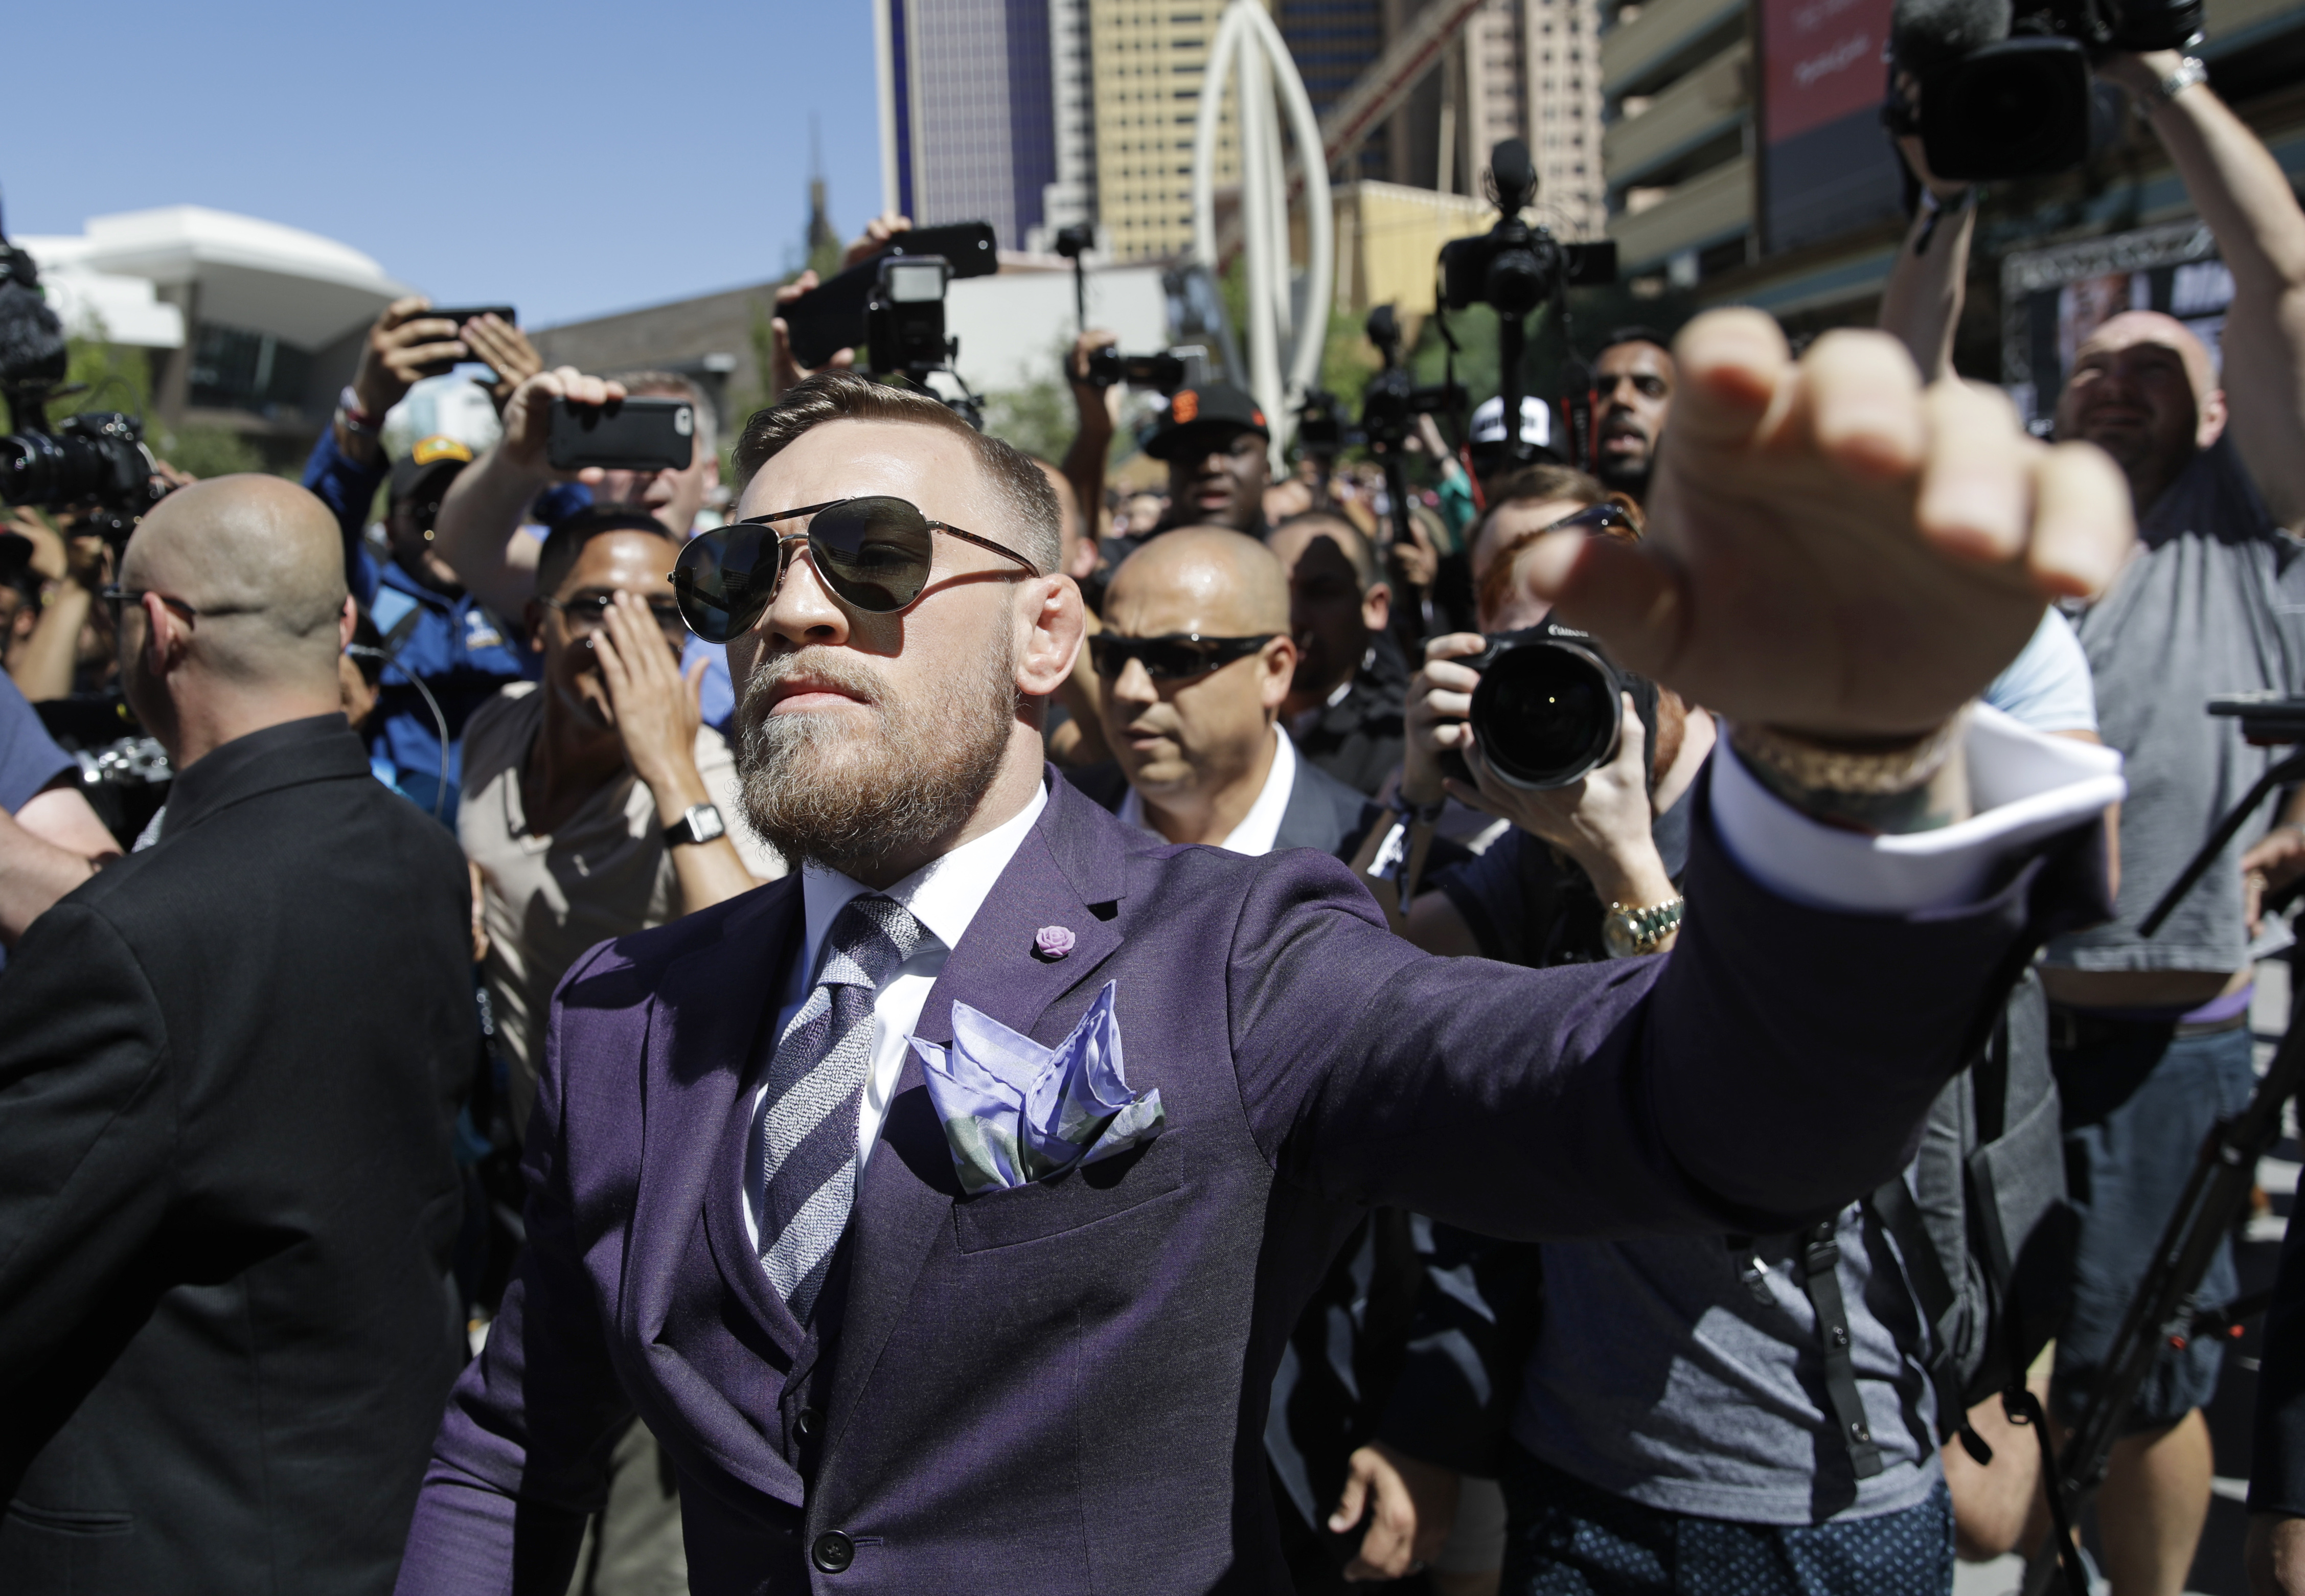 Conor McGregor waves to fans during the arrivals for their fight. (AAP)